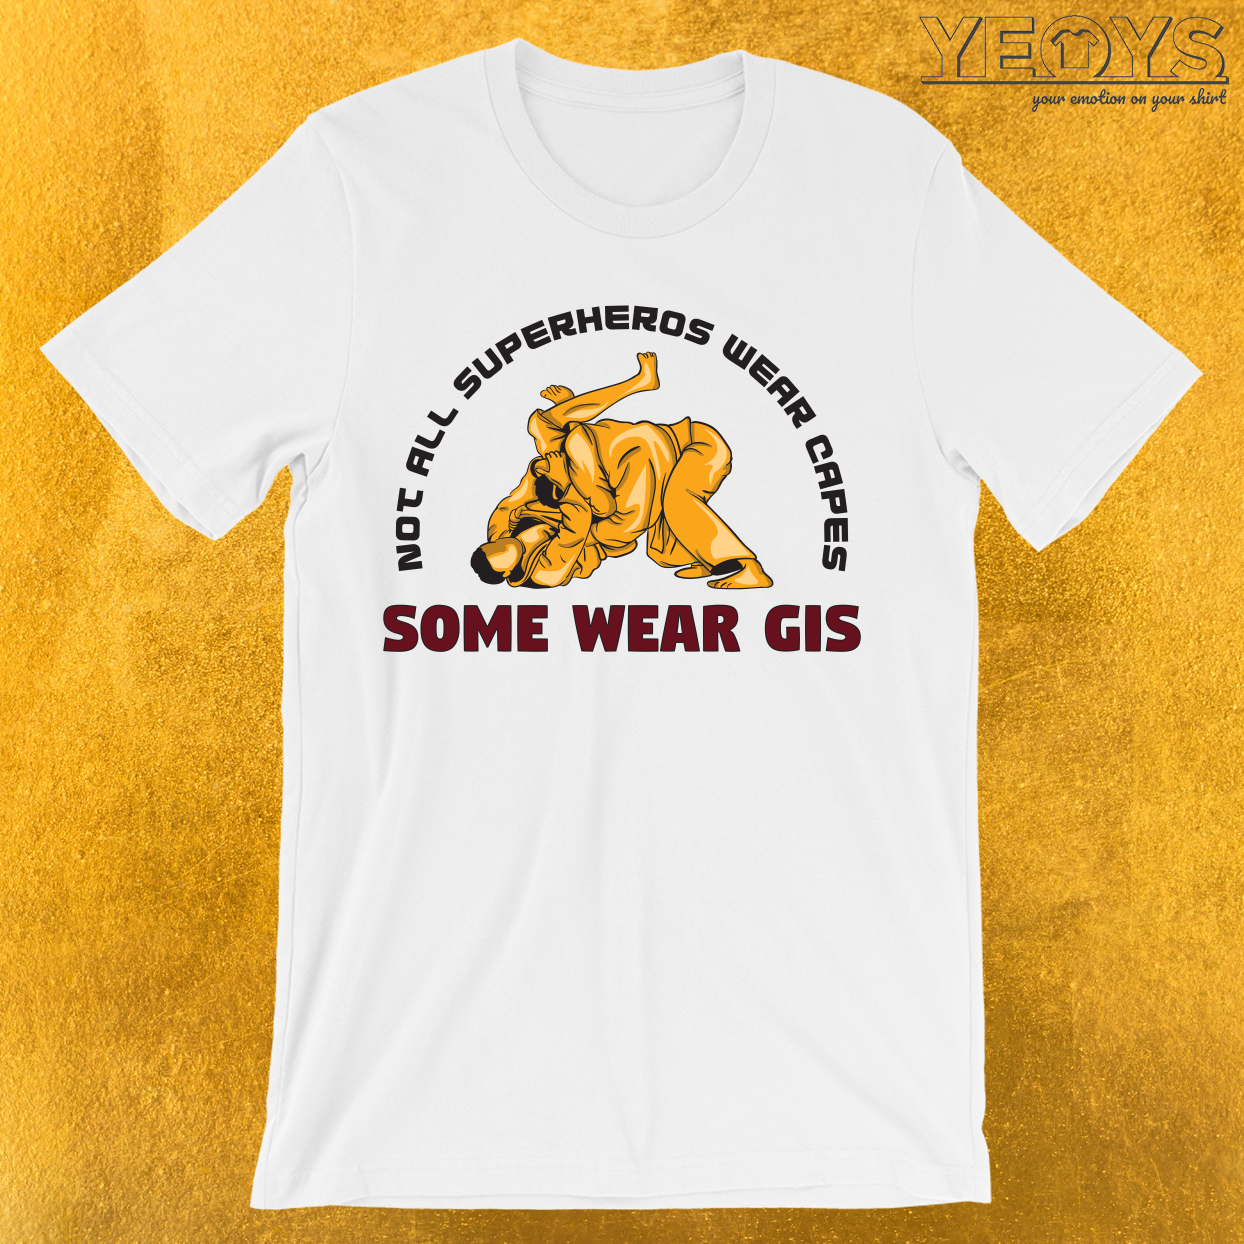 Not All Superheros Wear Capes. Some Wear Gis. T-Shirt